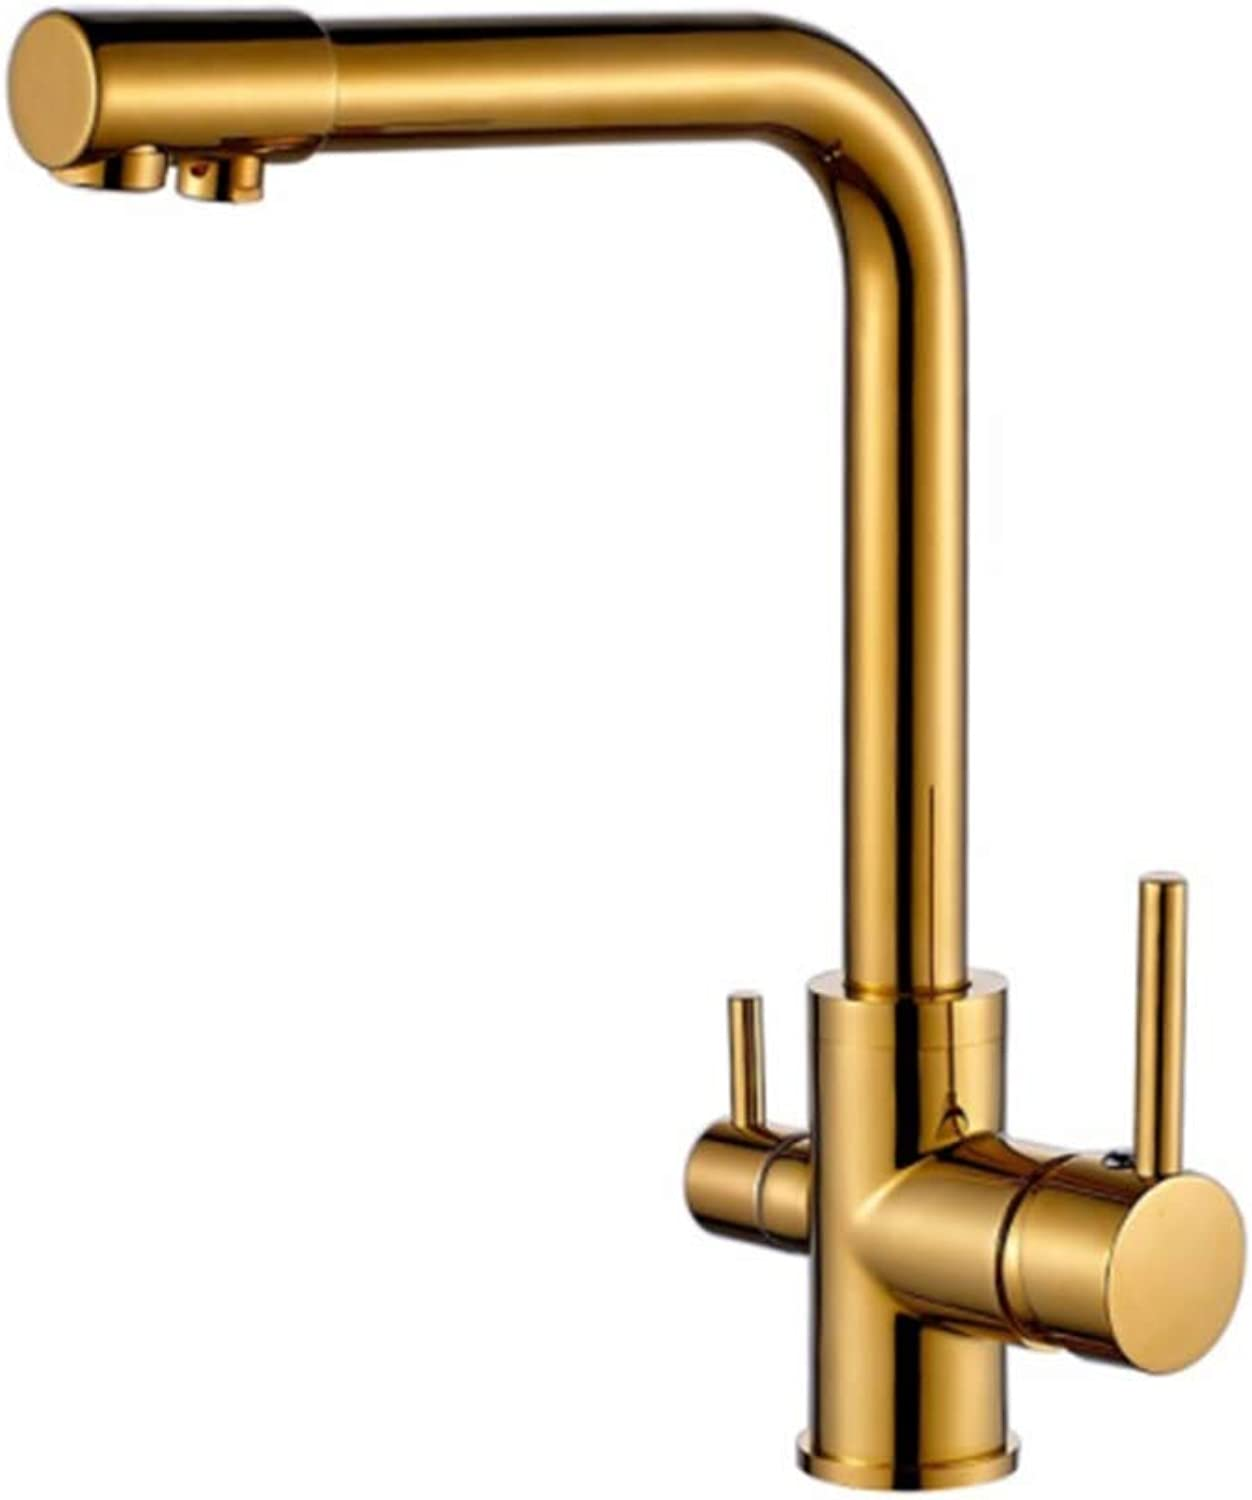 Taps Kitchen Basin Bathroom Washroom100% Copper gold Finished Swivel Drinking Water Faucet 3 Way Water Filter Purifier Kitchen Faucets for Sinks Taps